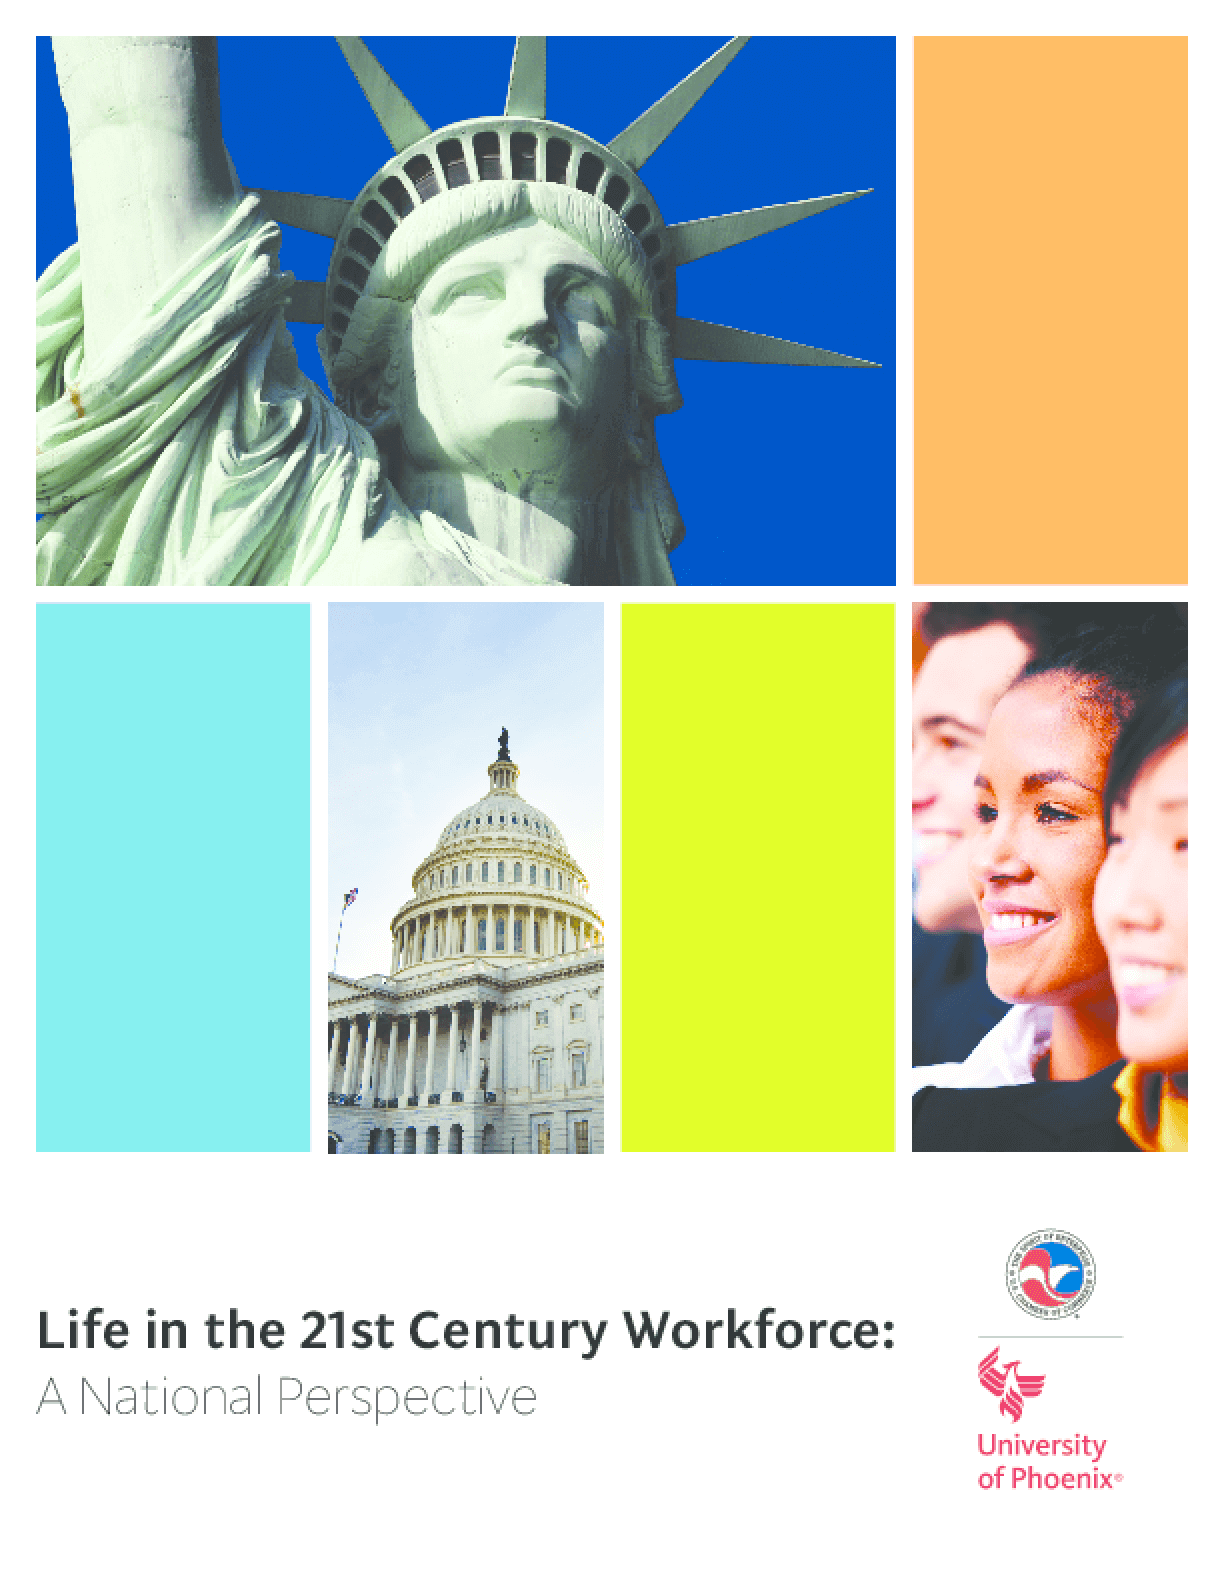 Life in the 21st Century Workforce: A National Perspective